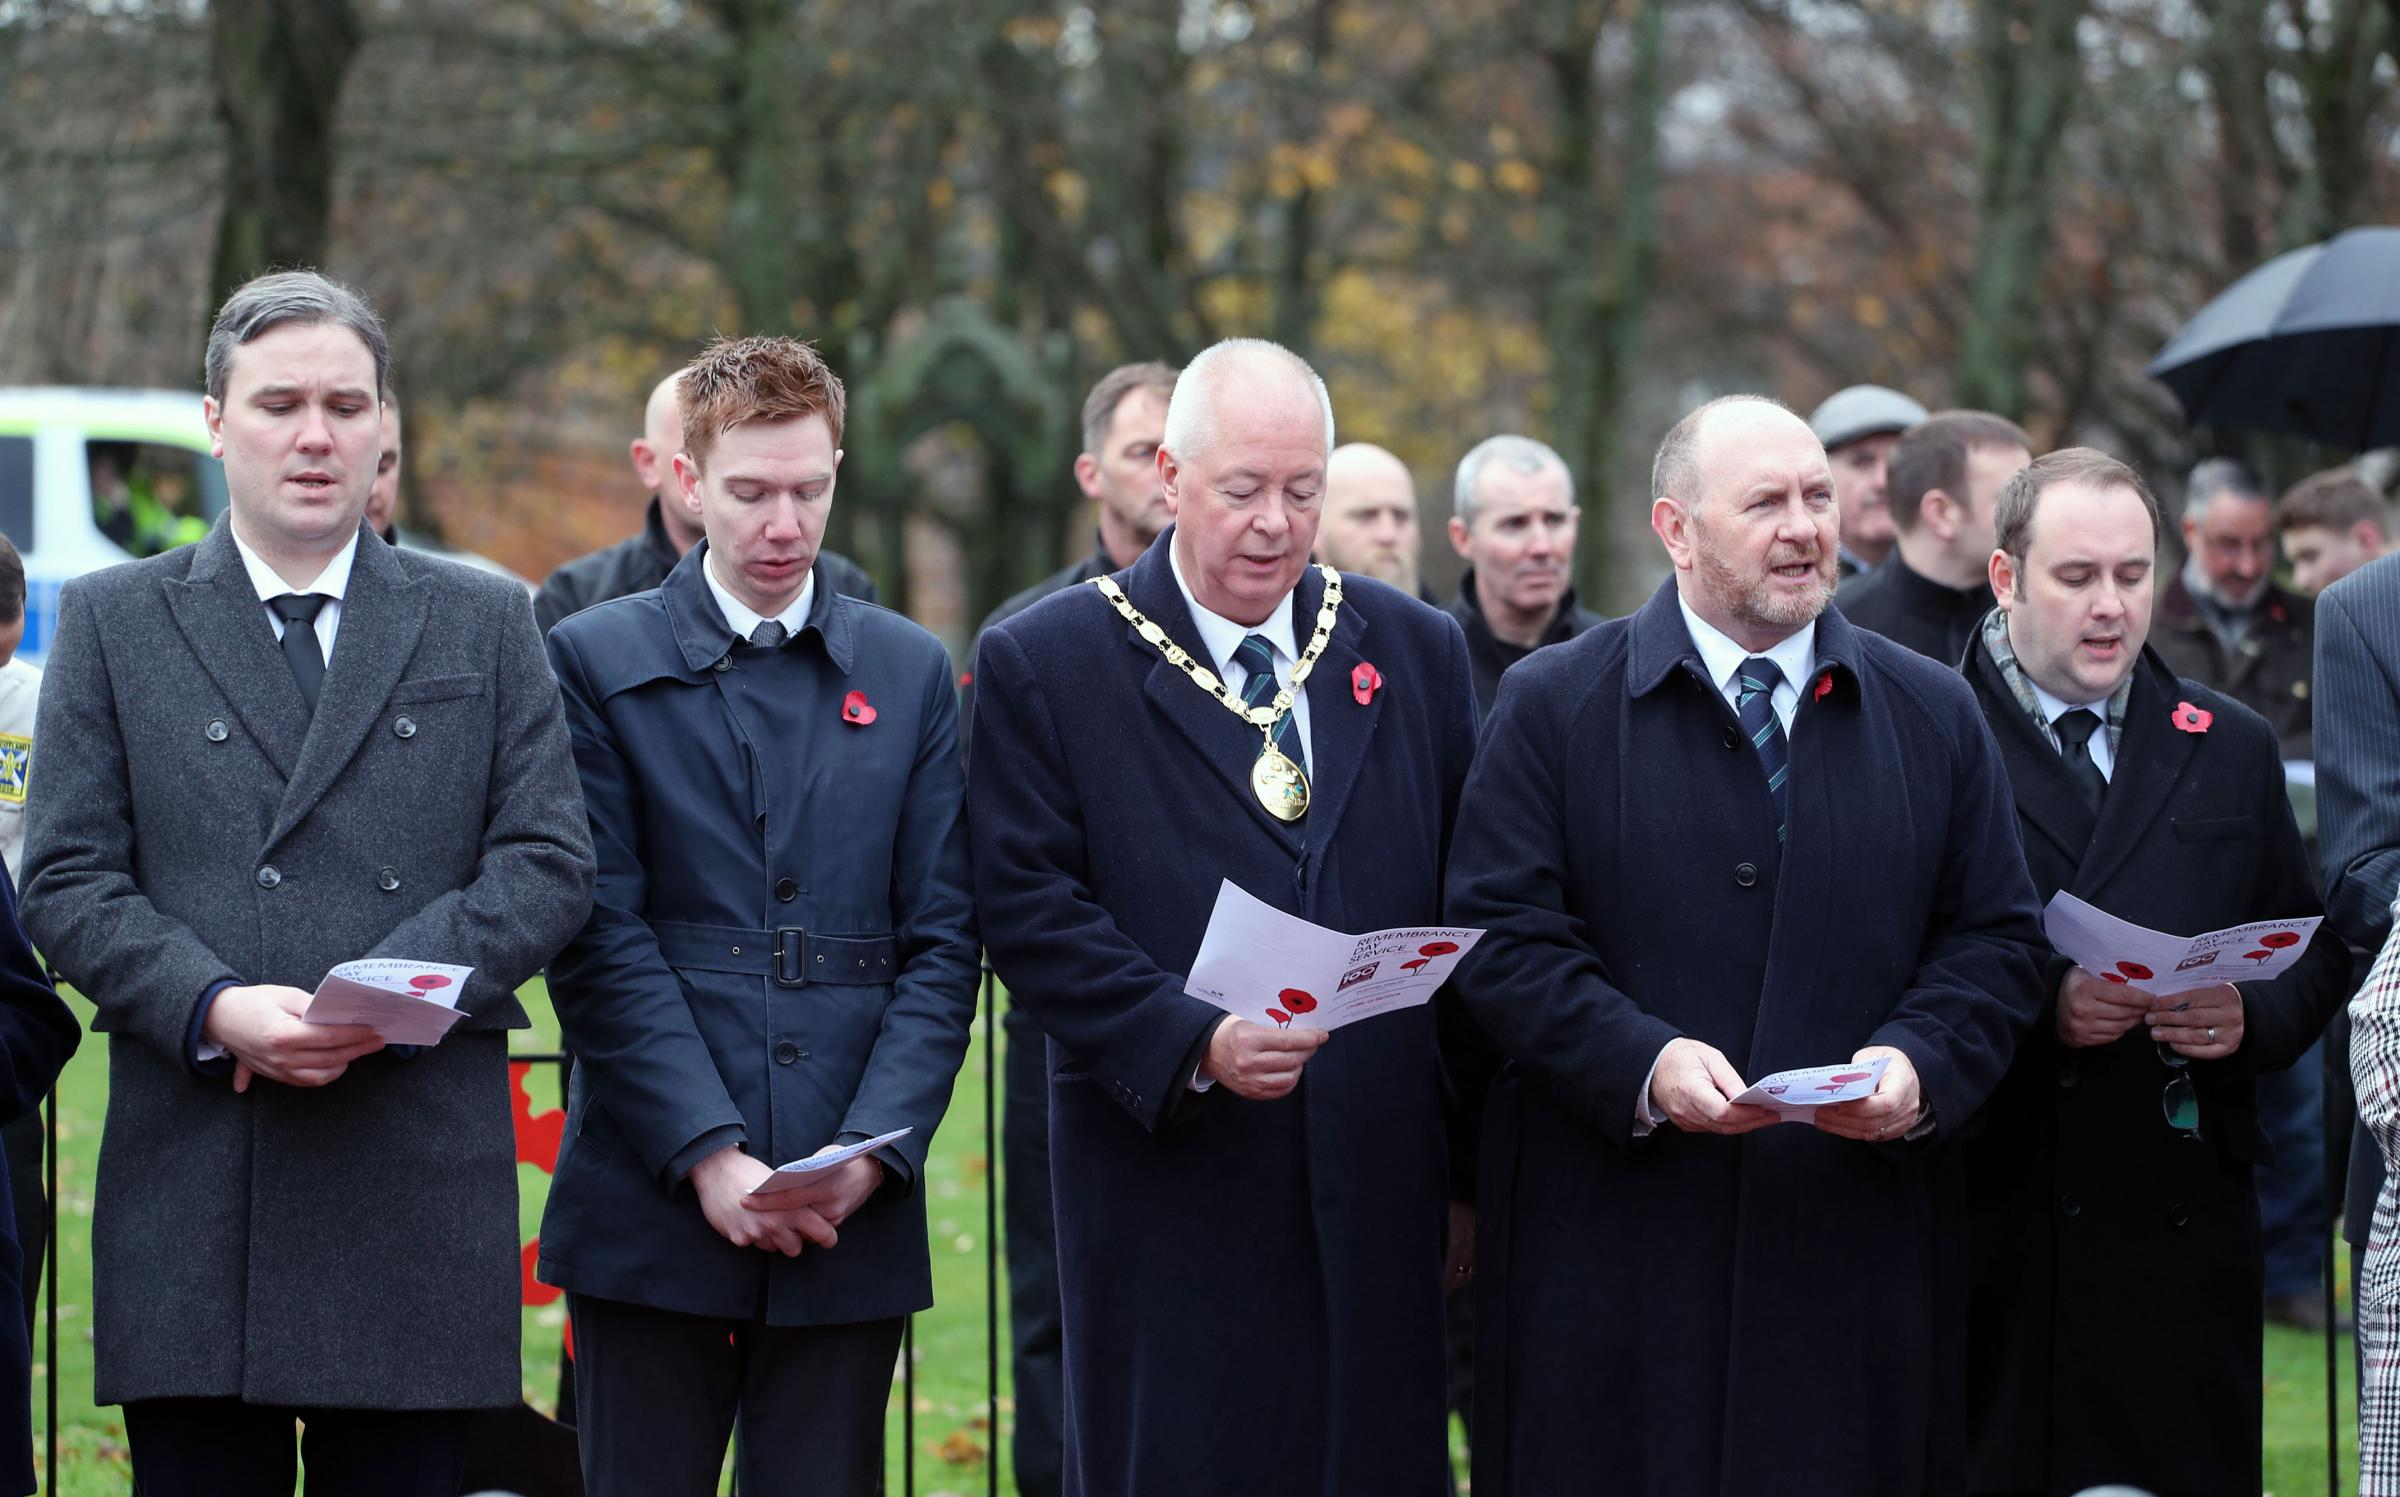 I was honoured to attend events marking 100 years since the end of World War One